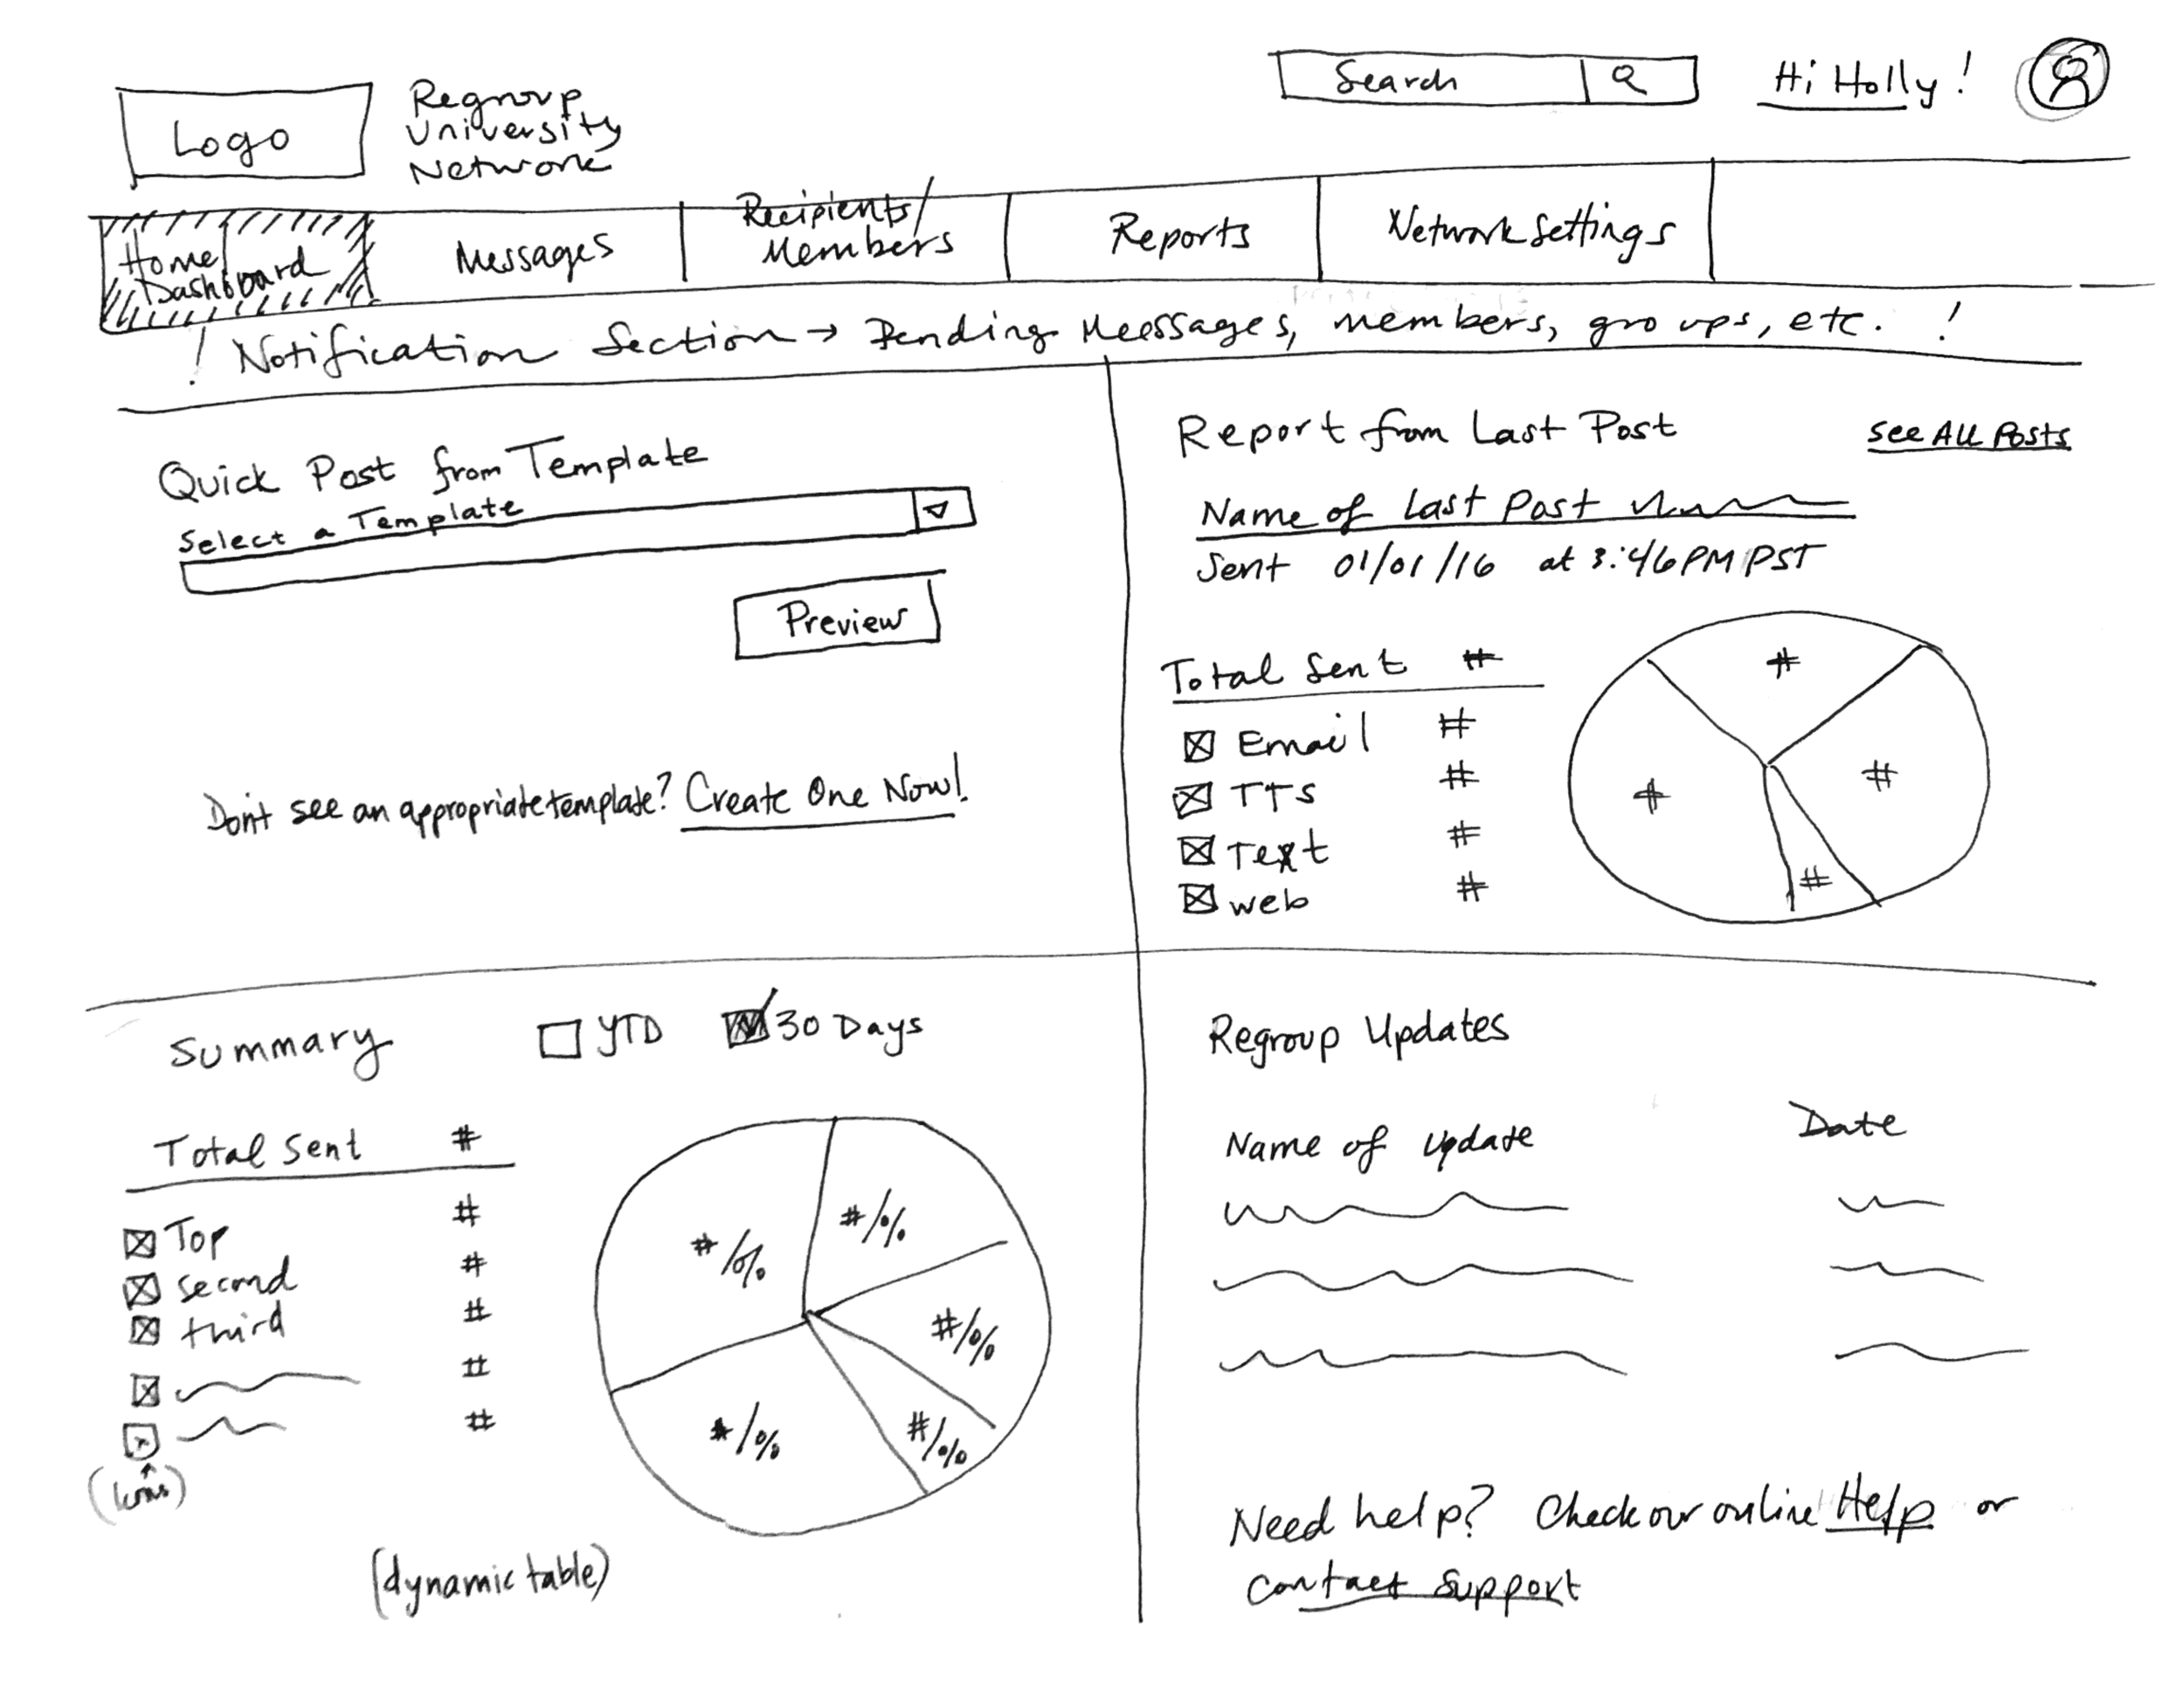 Initial Sketch of Dashboard